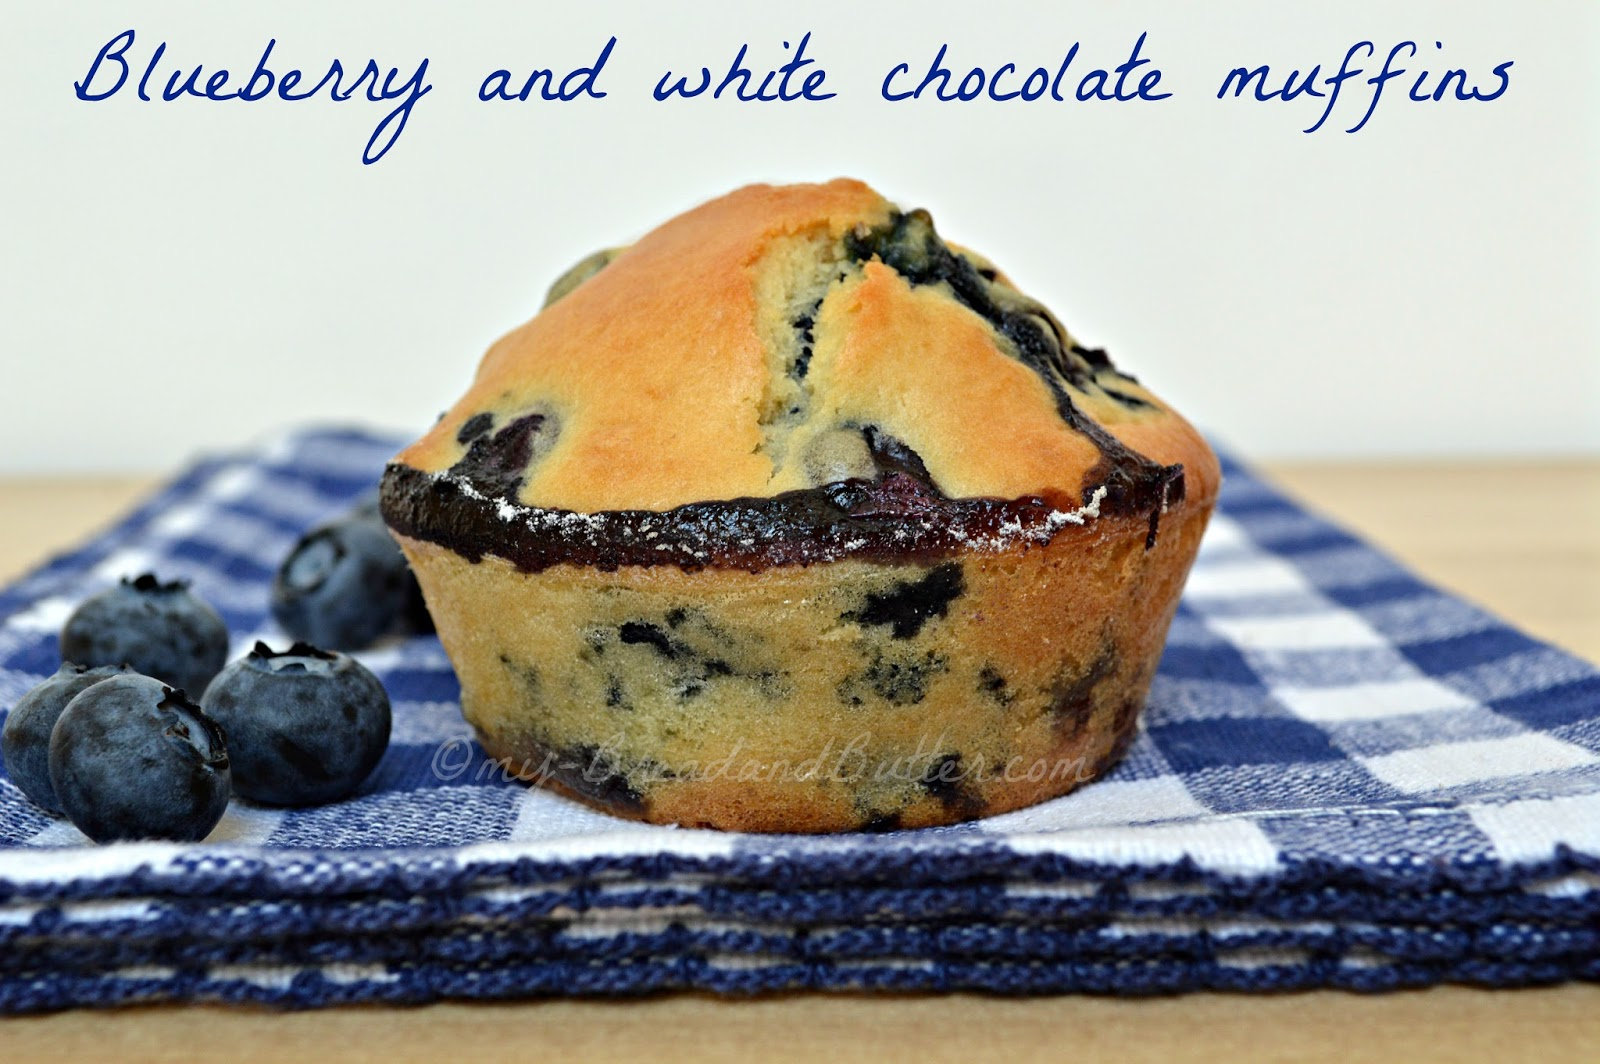 BLUEBERRY AND WHITE CHOCOLATE MUFFINS INGREDIENTS Makes 4 muffins